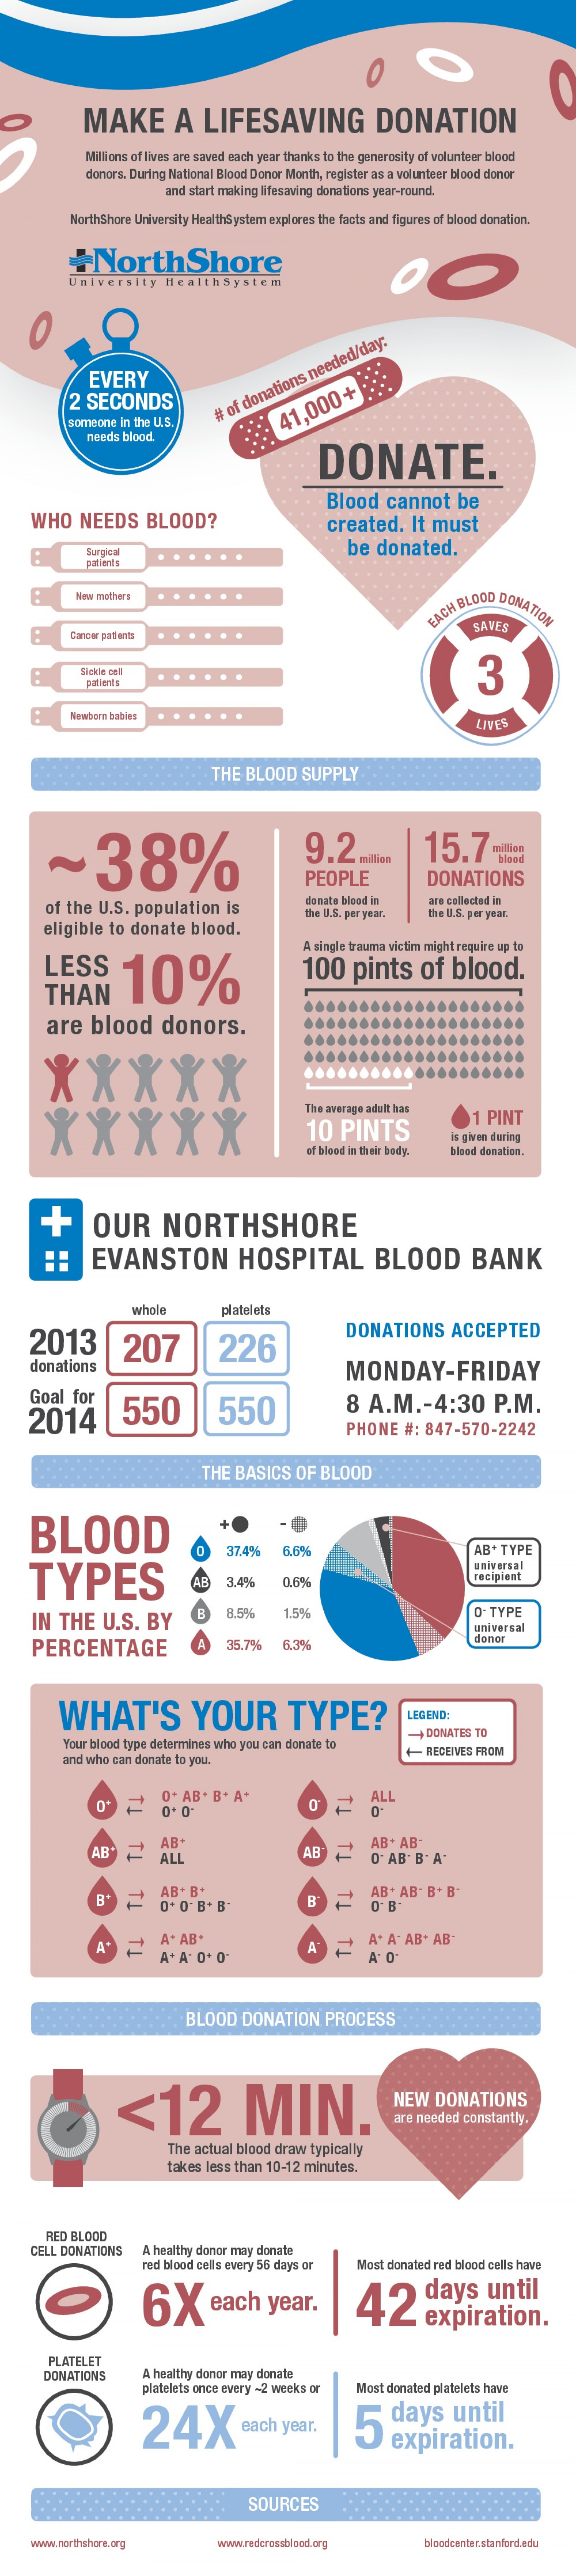 It's a Lifesaver: Blood Donation Facts & Stats Infographic